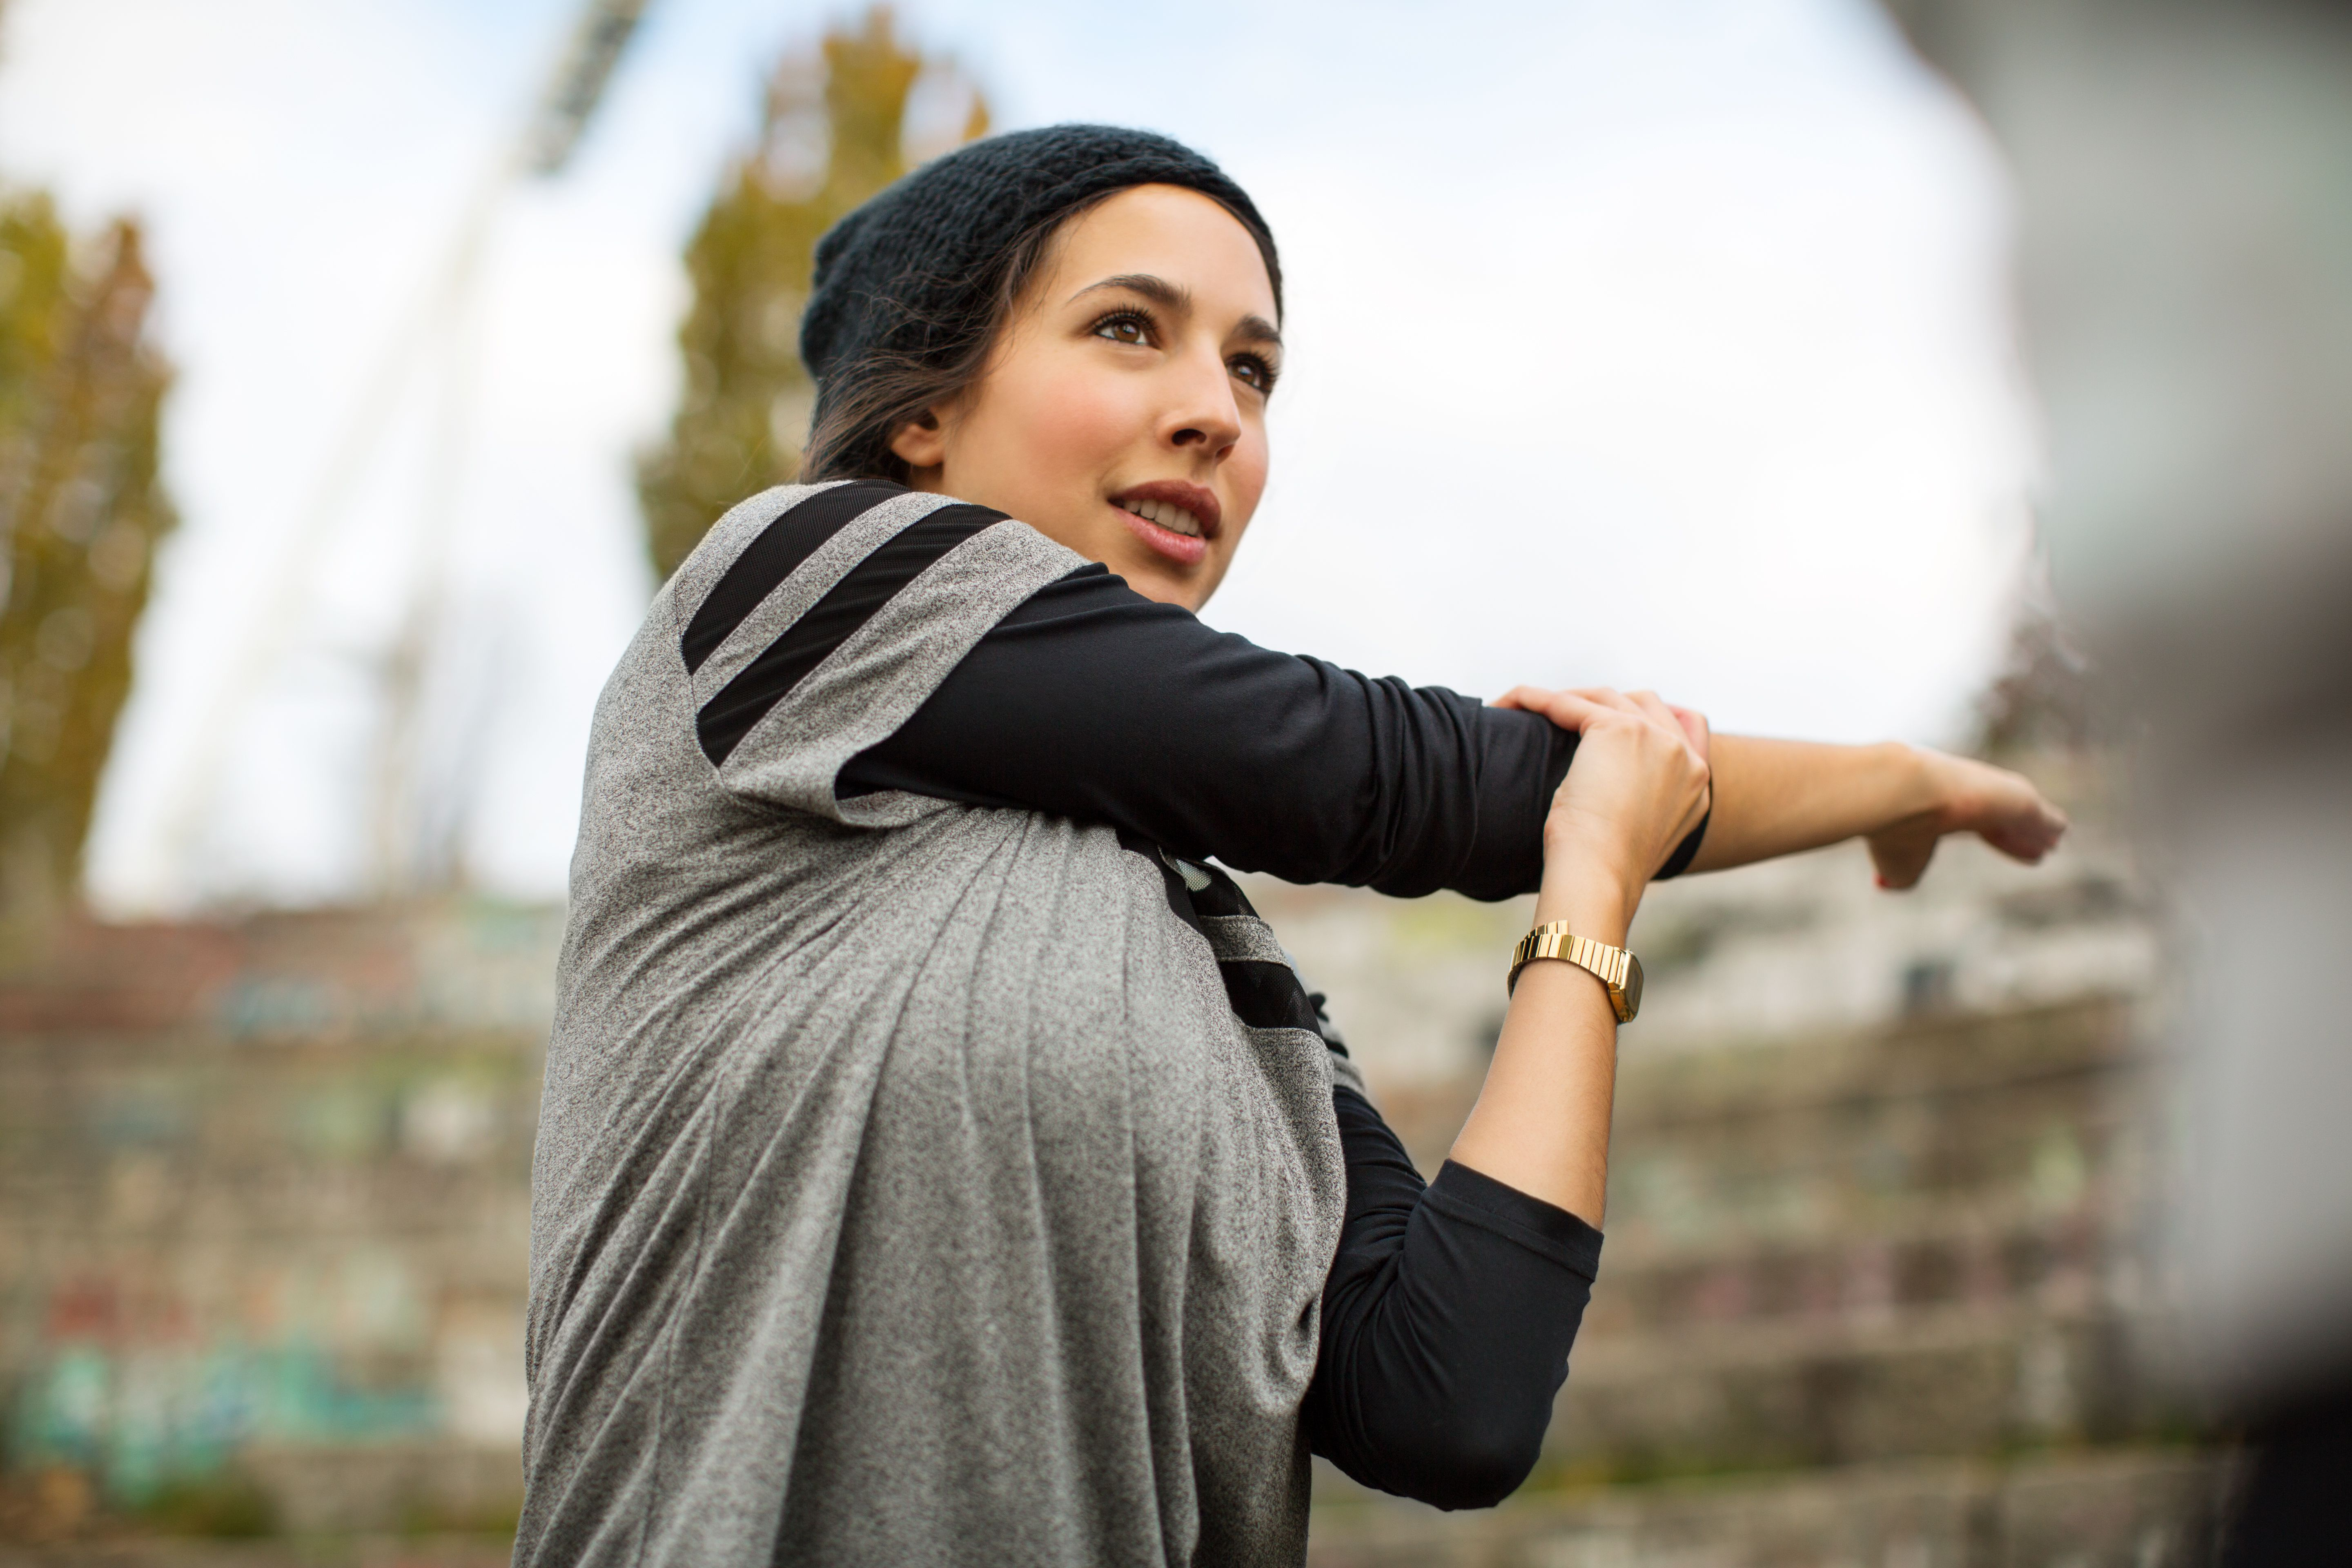 Woman stretching arms before exercise